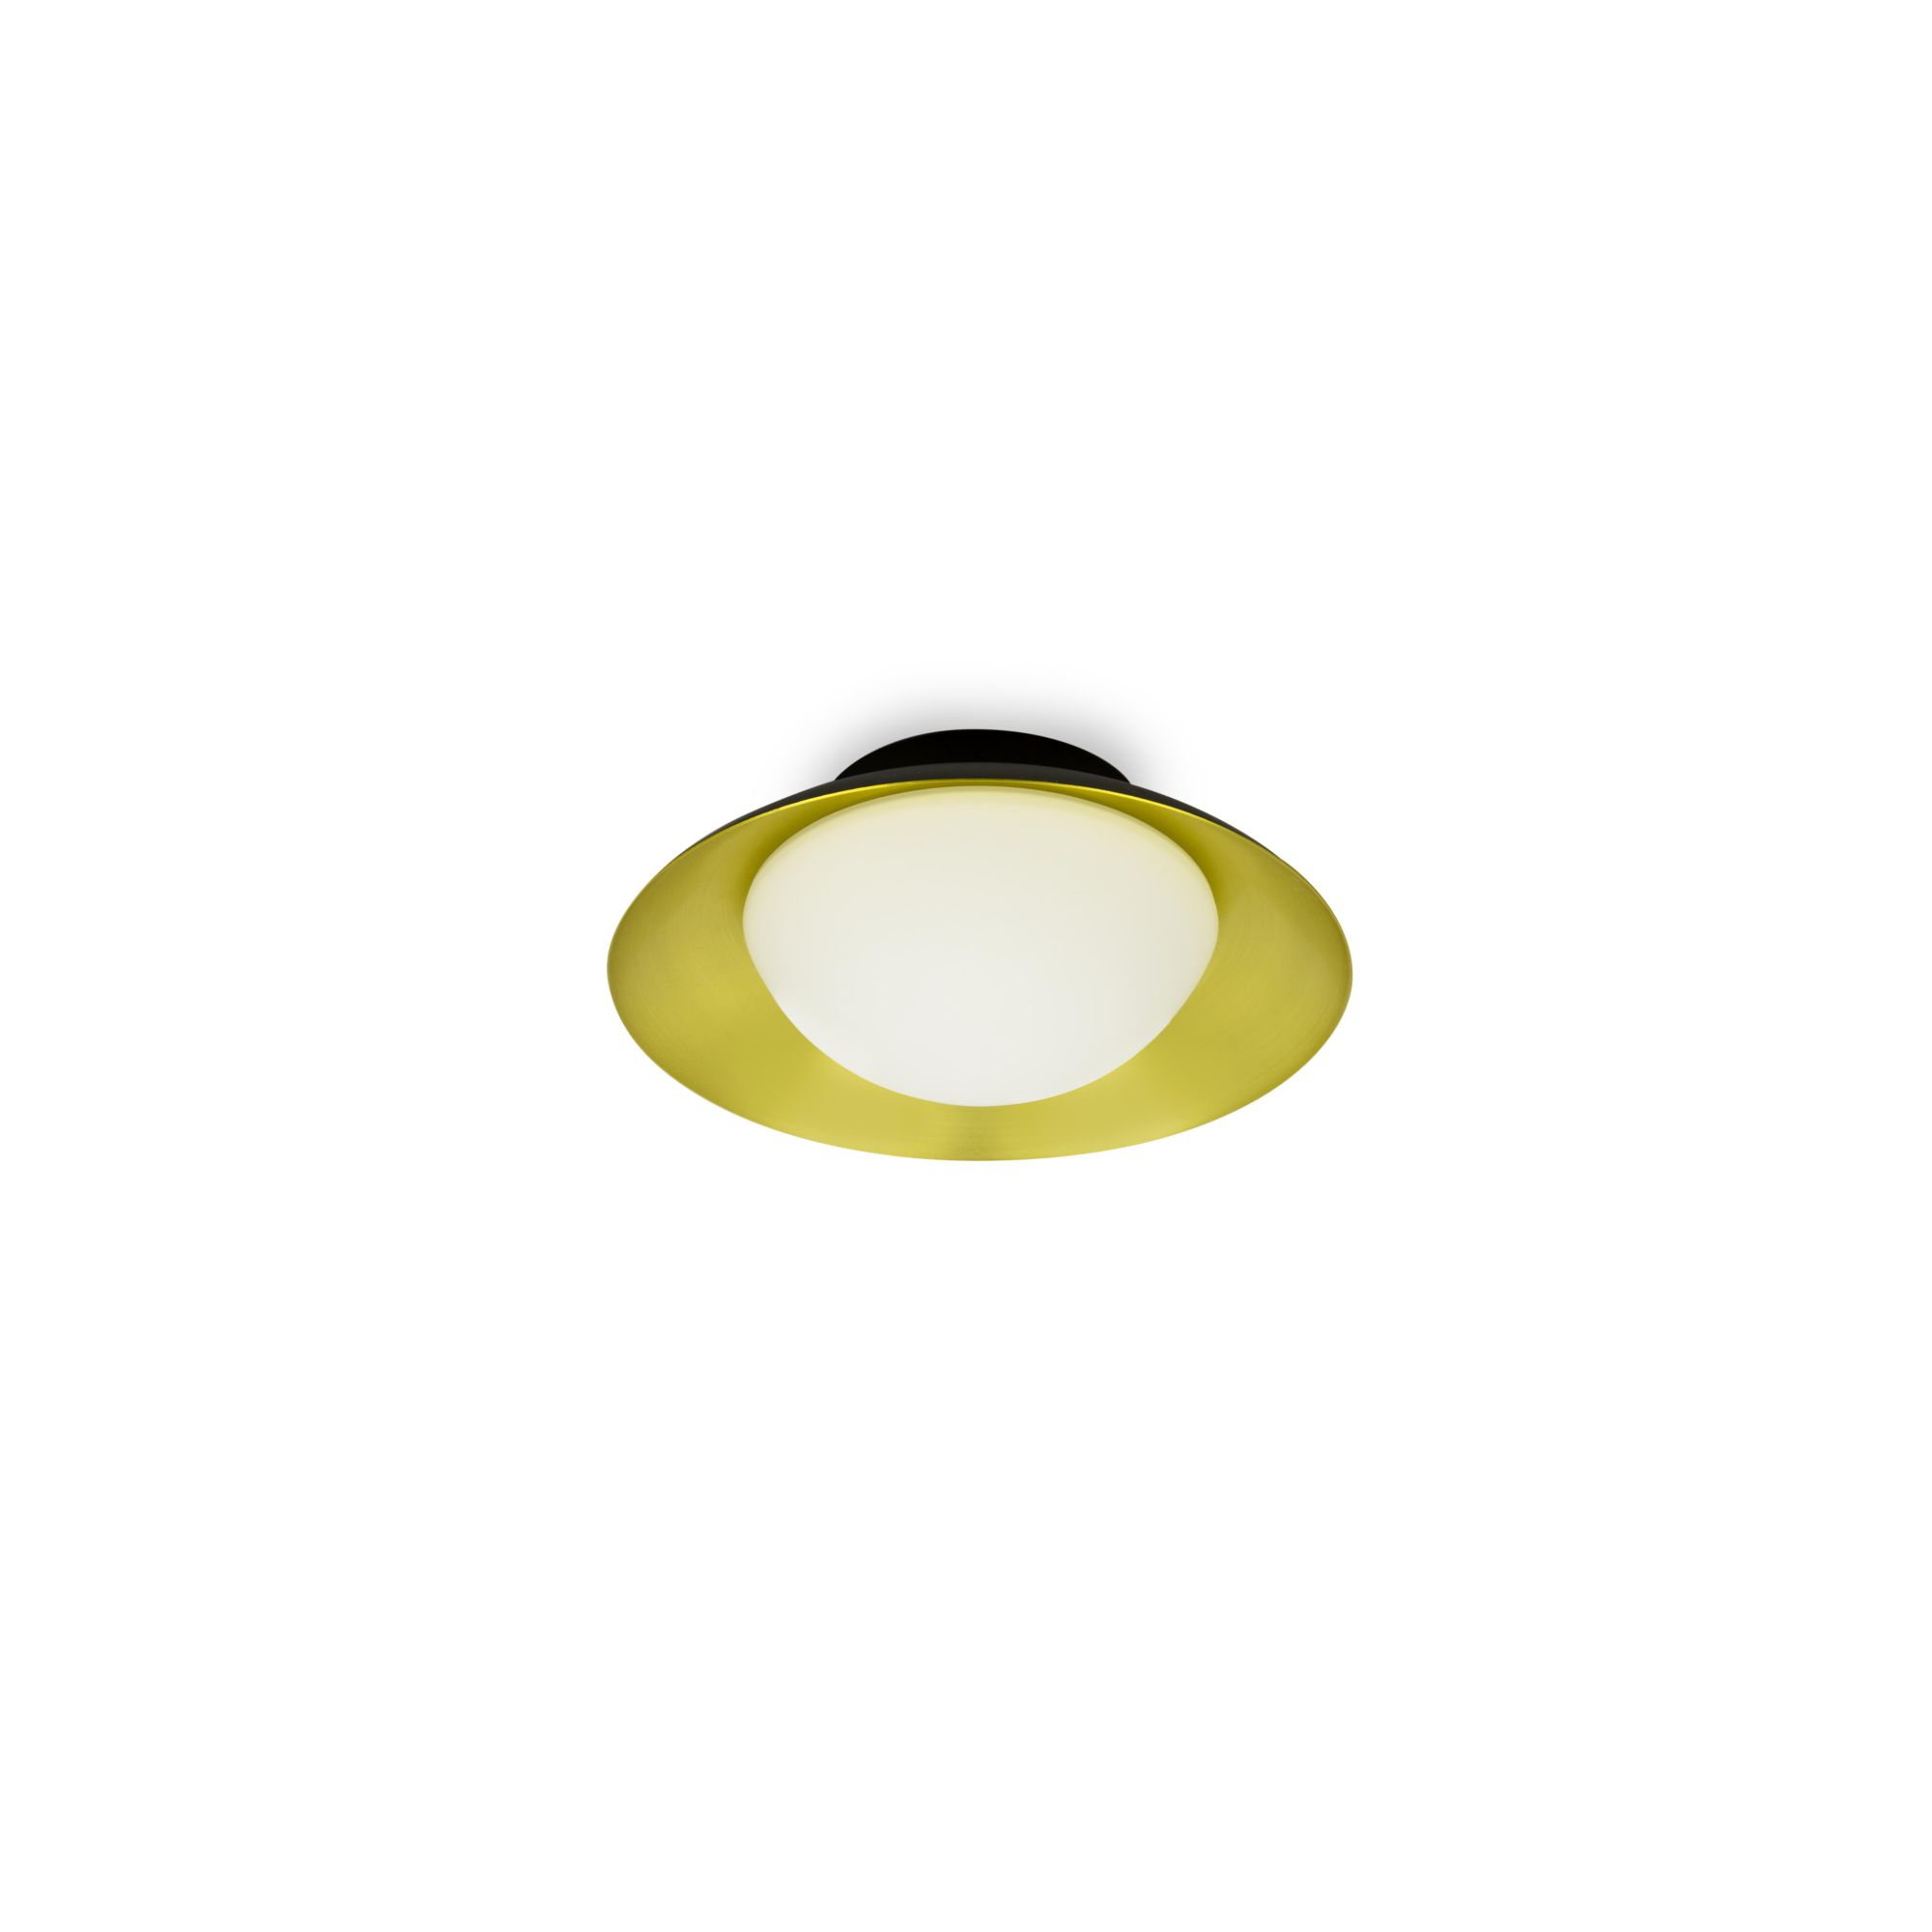 SIDE PLAFON Ø200 NEGRO/ORO SATINADO G9 LED 28W